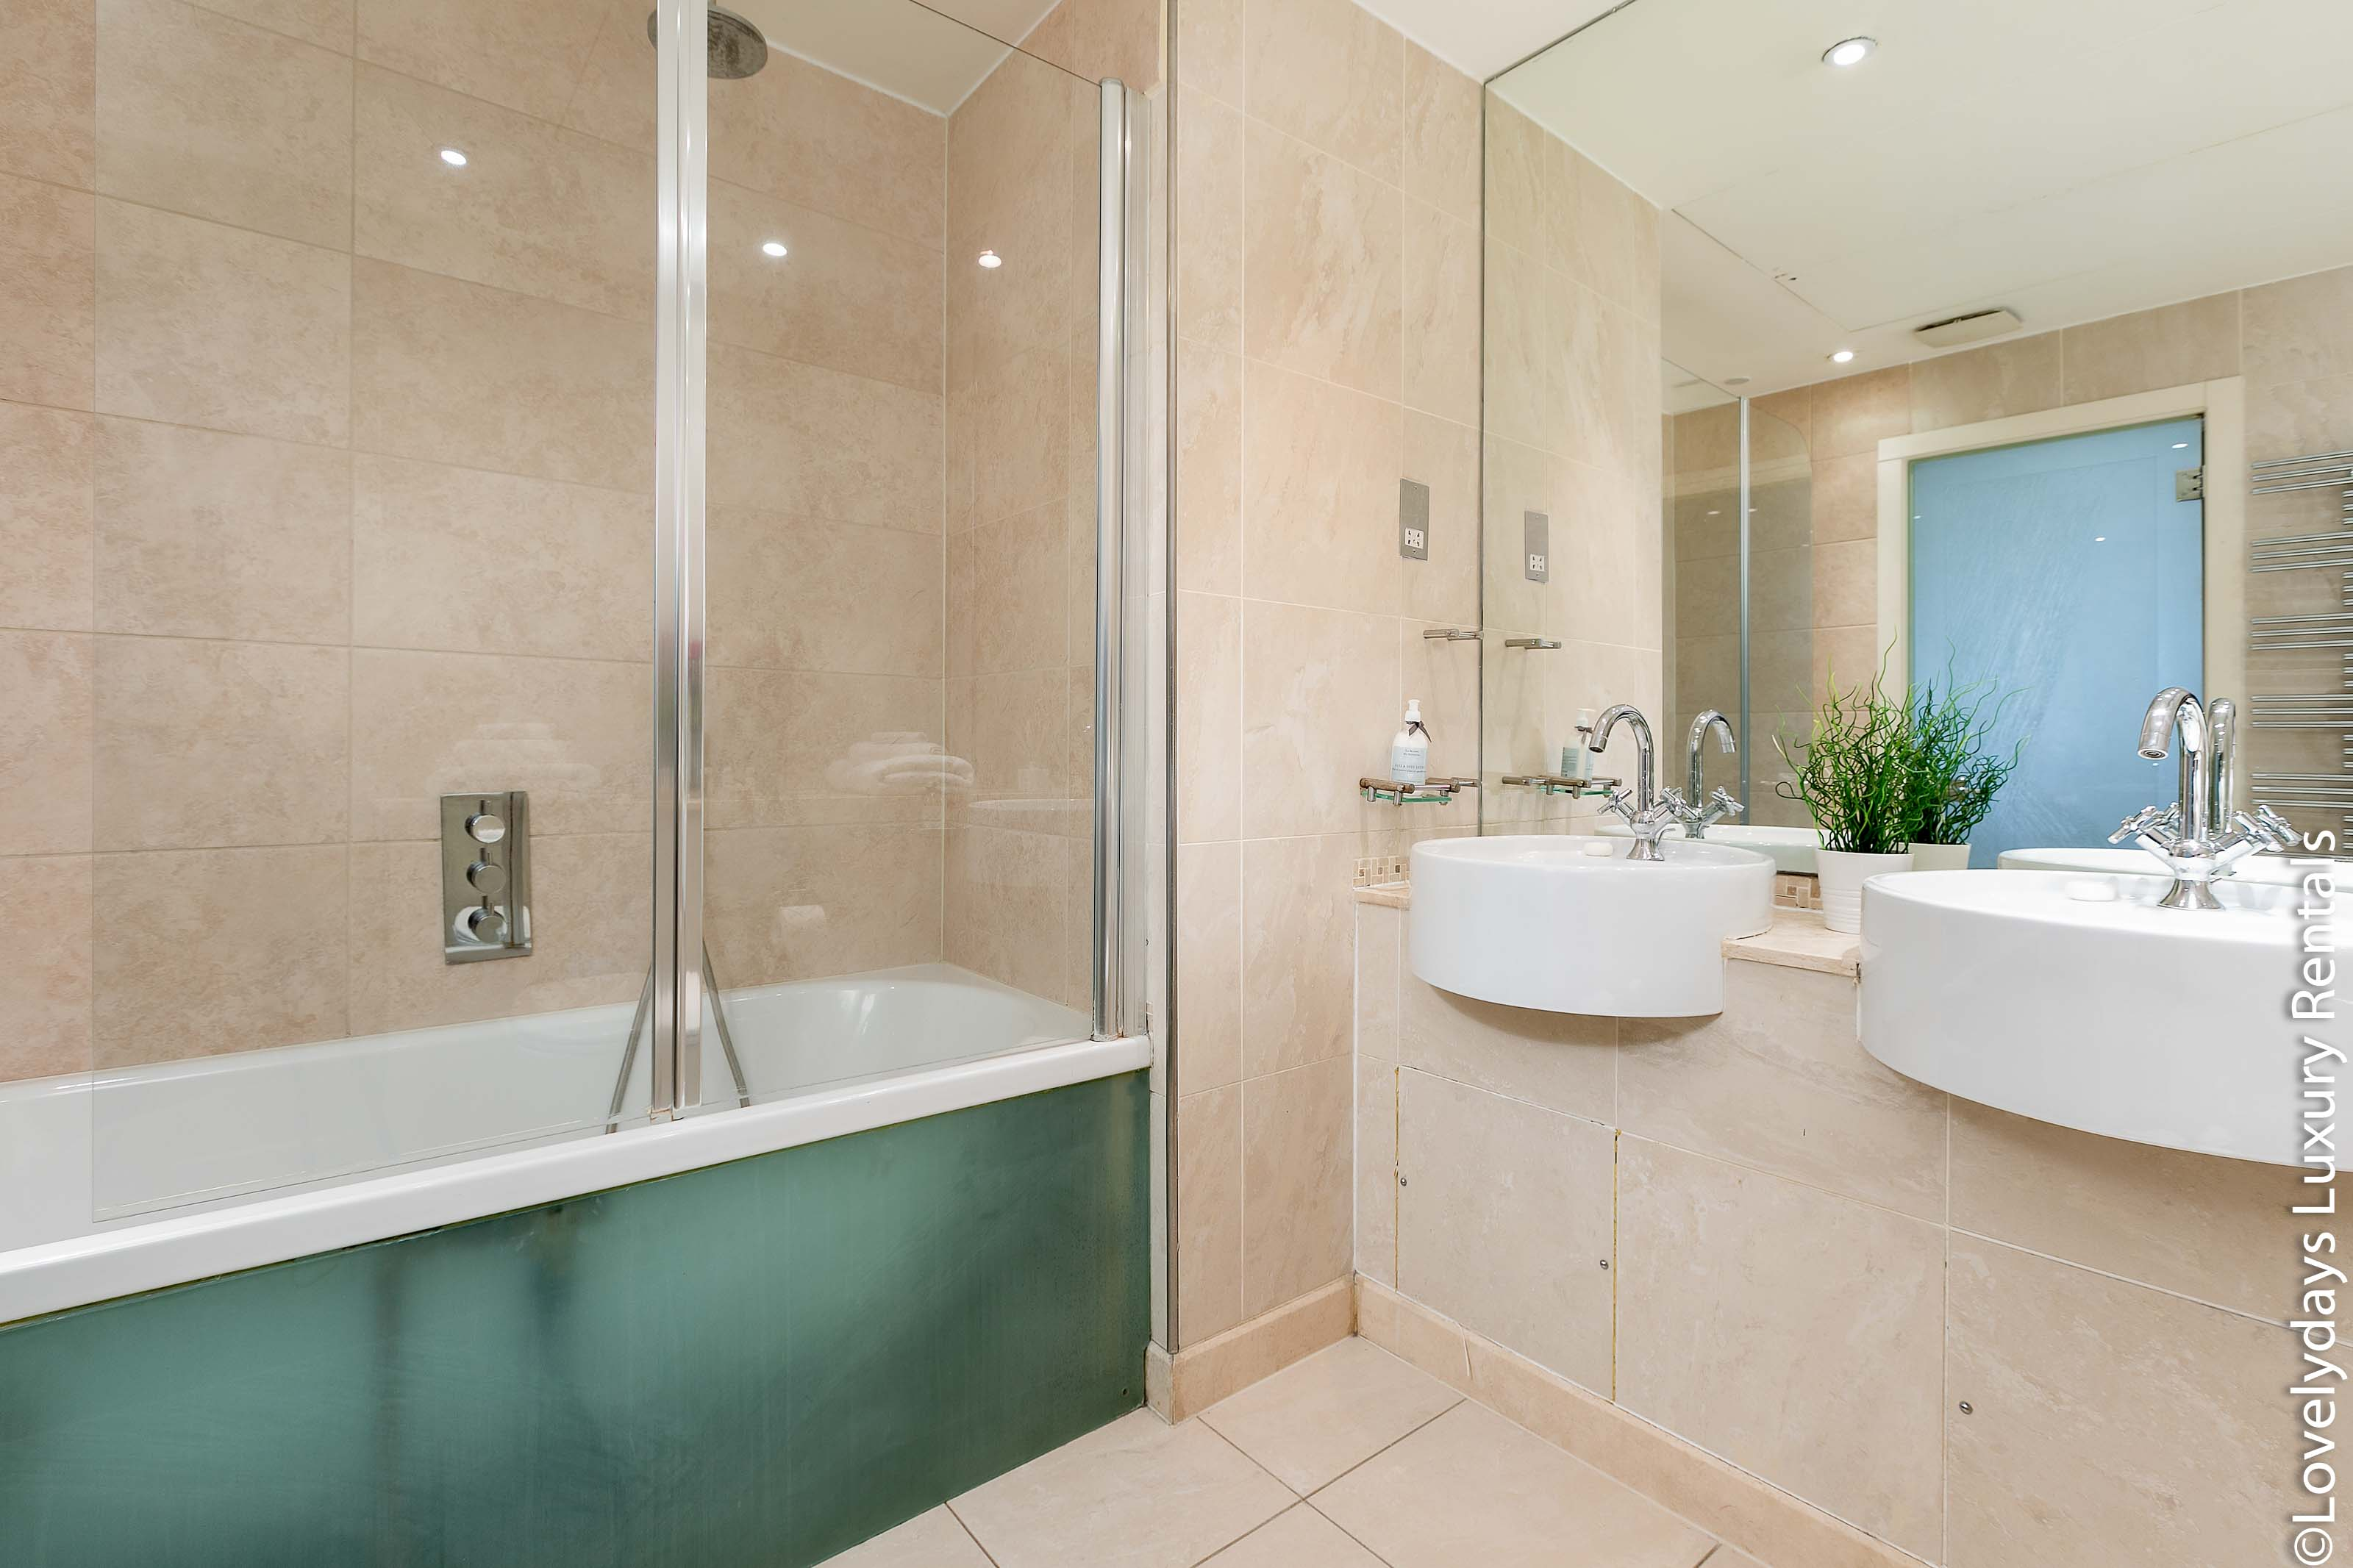 Lovelydays luxury service apartment rental - London - Knightsbridge - Hans Crescent - Partner - 2 bedrooms - 2 bathrooms - Beautiful bathtub - b7d29321b2f3 - Lovelydays